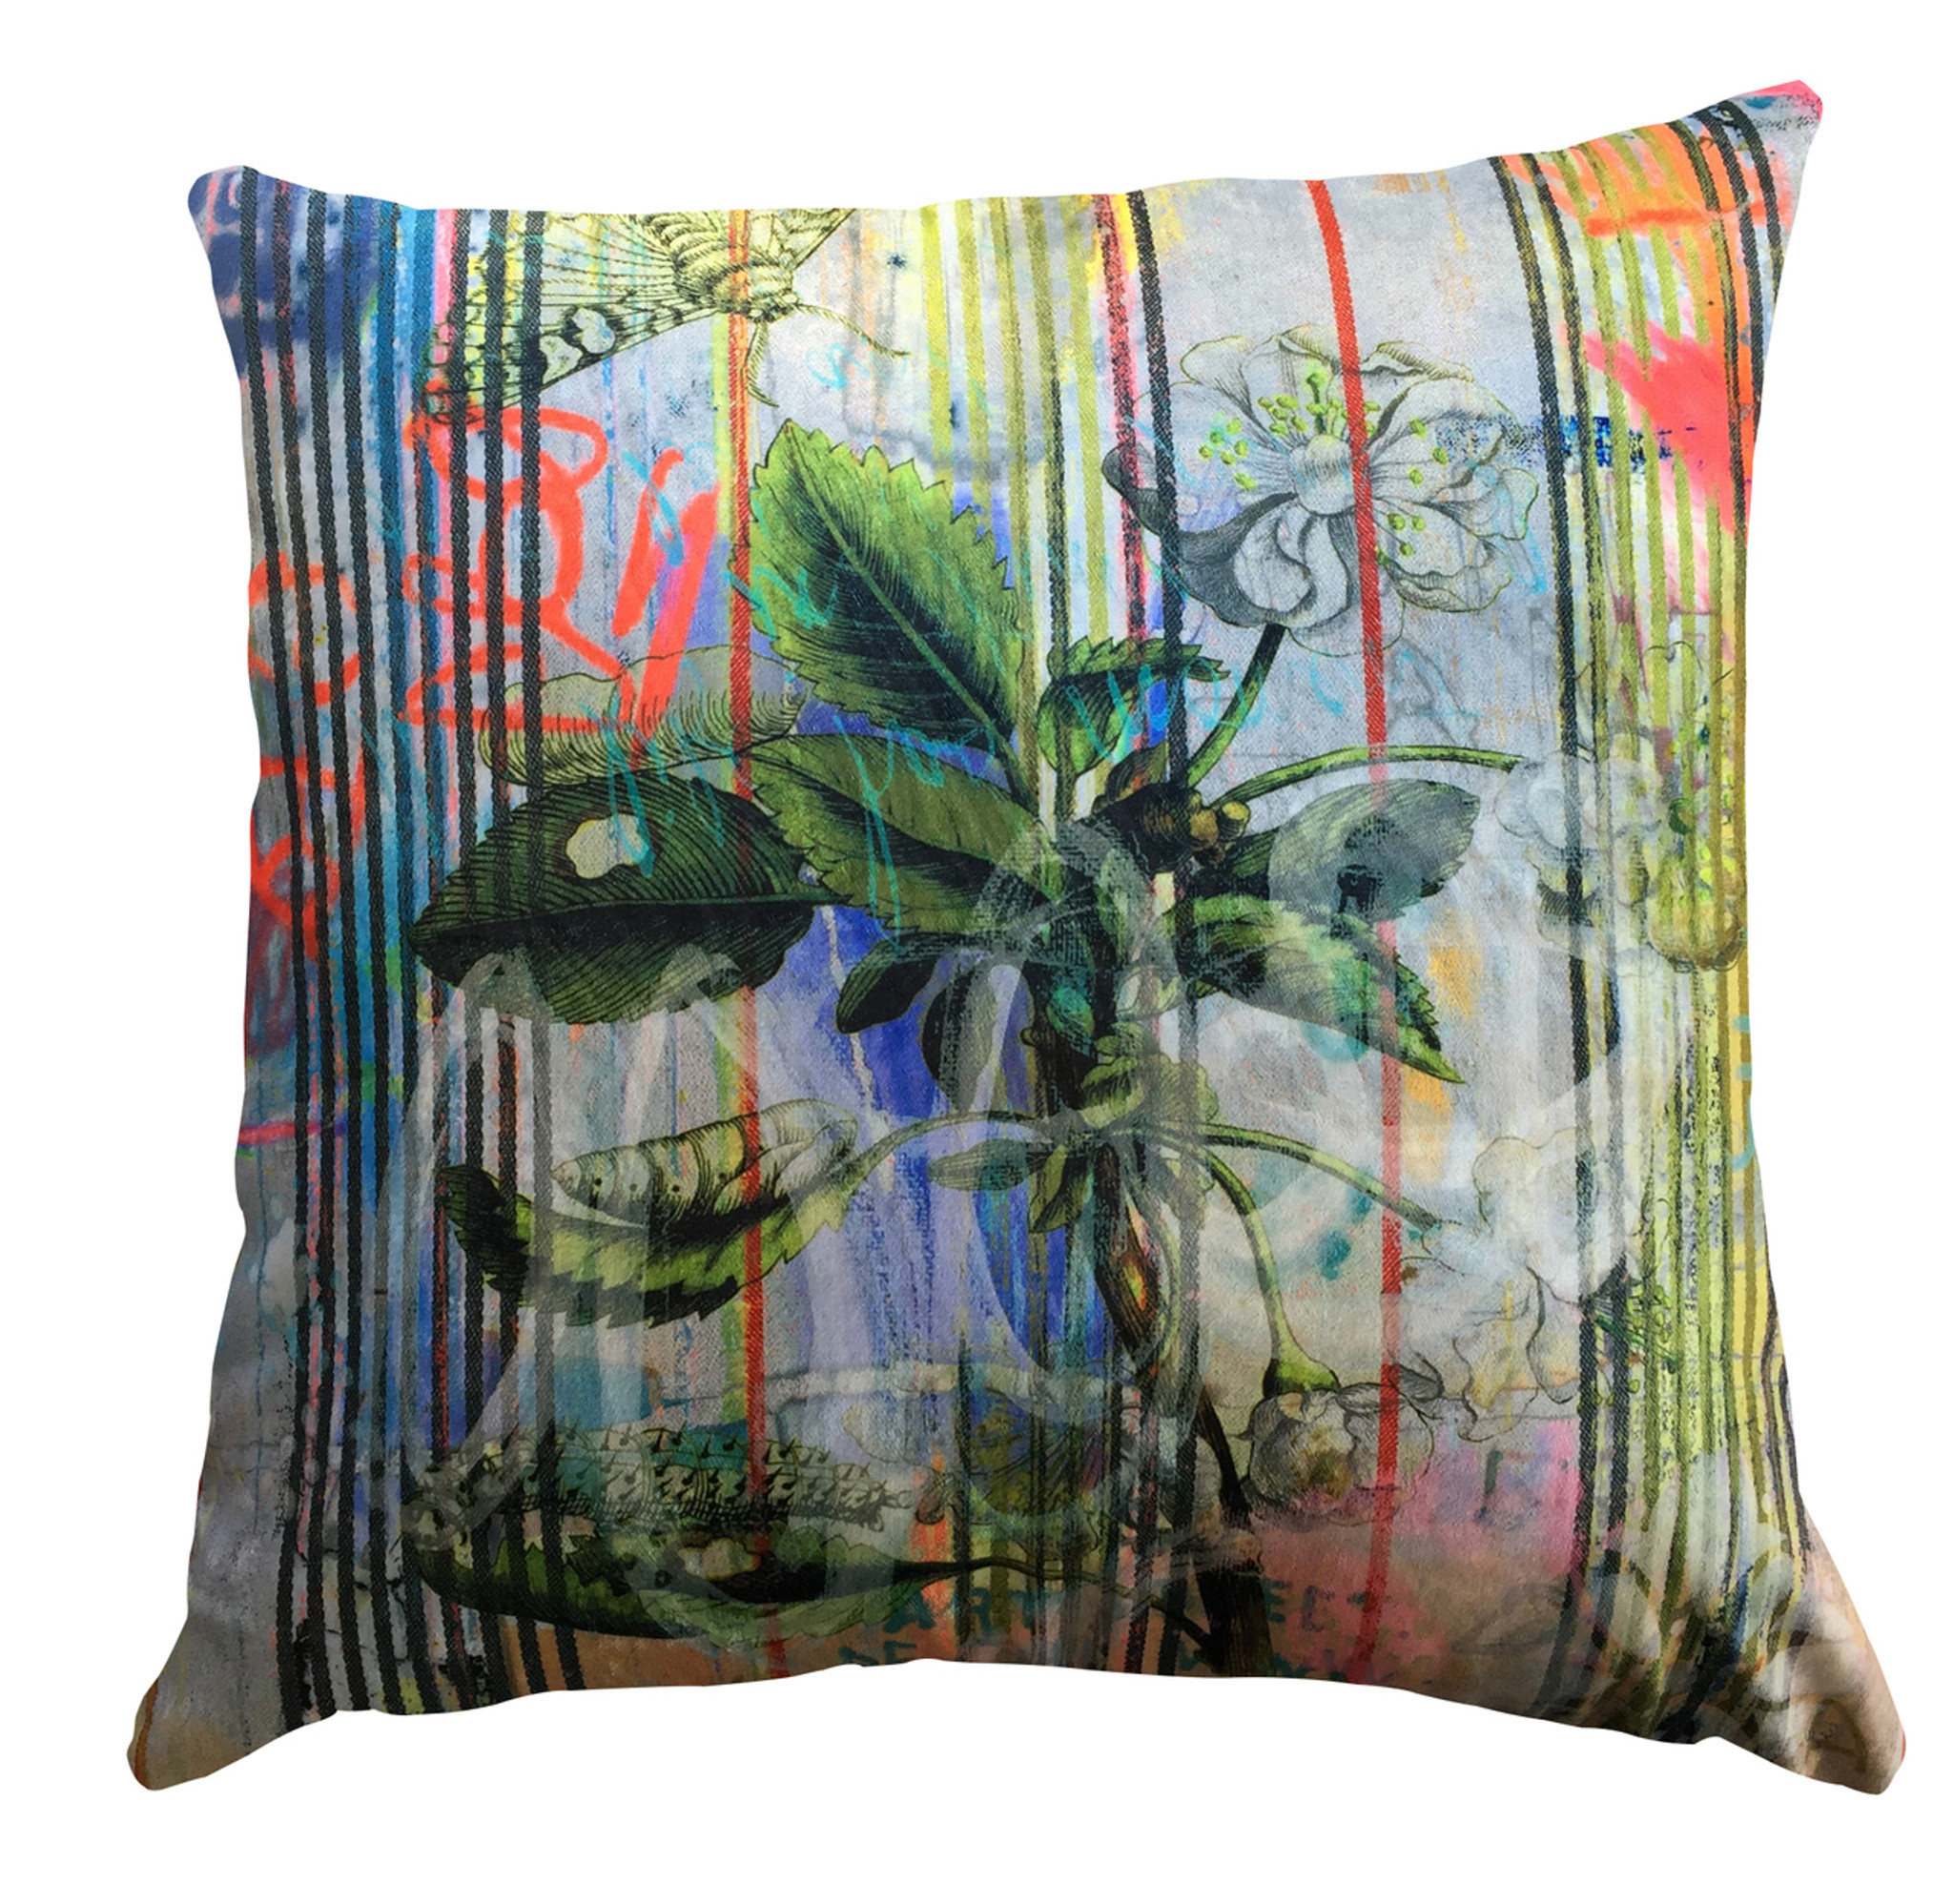 Cushion Cover - Botanical Ticking - Floral